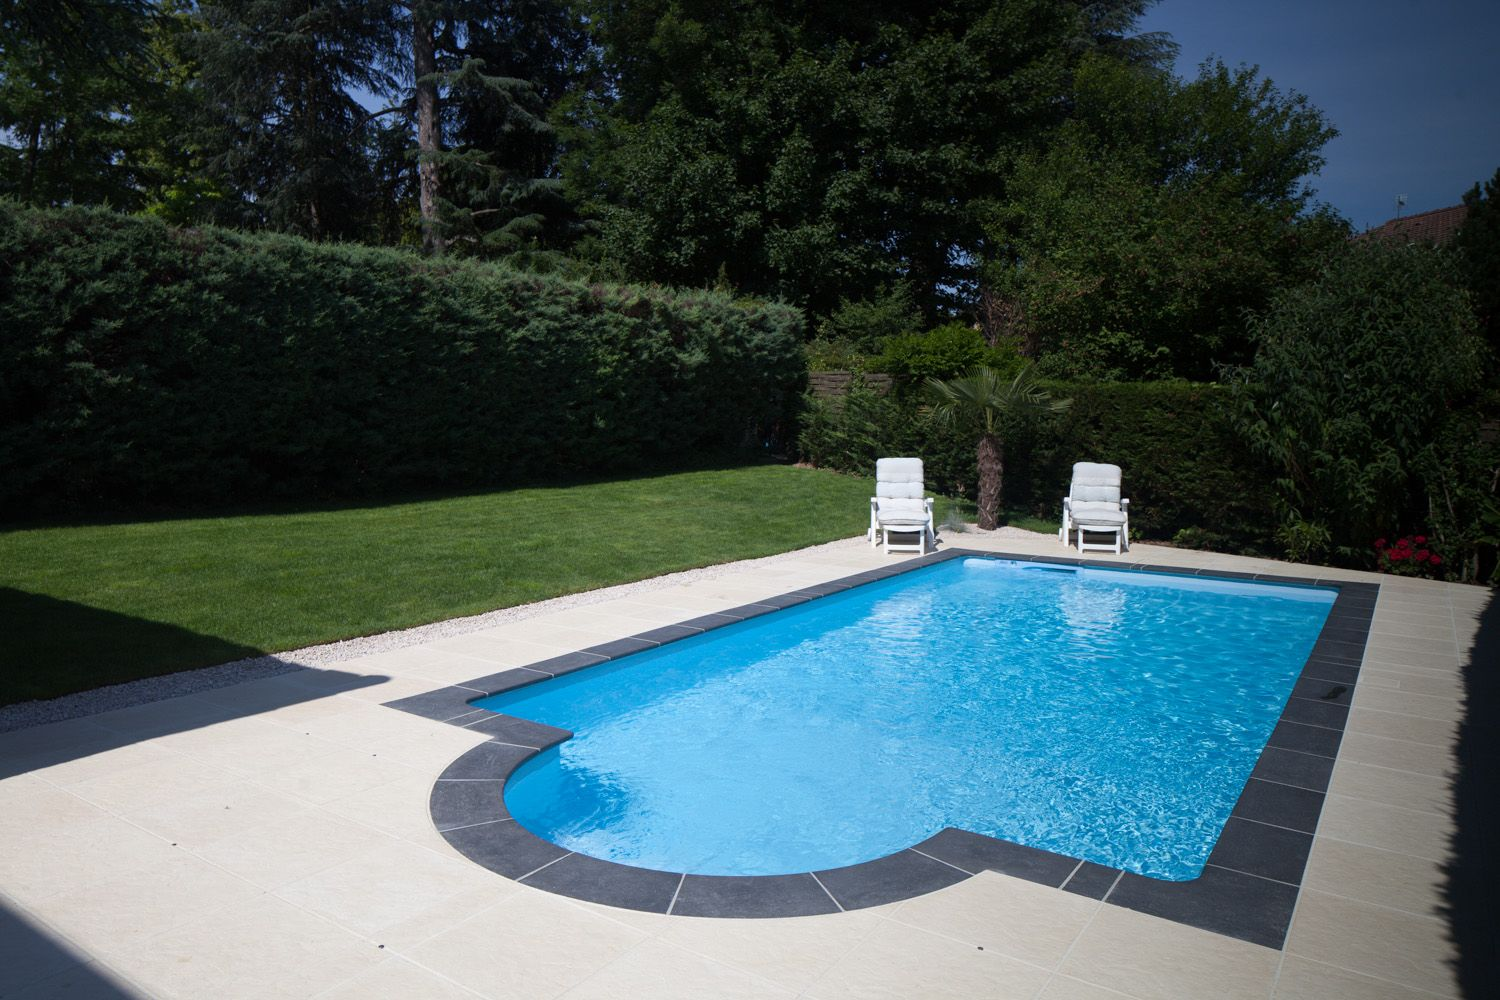 Piscines Sion Montreux Etoy taille_xs